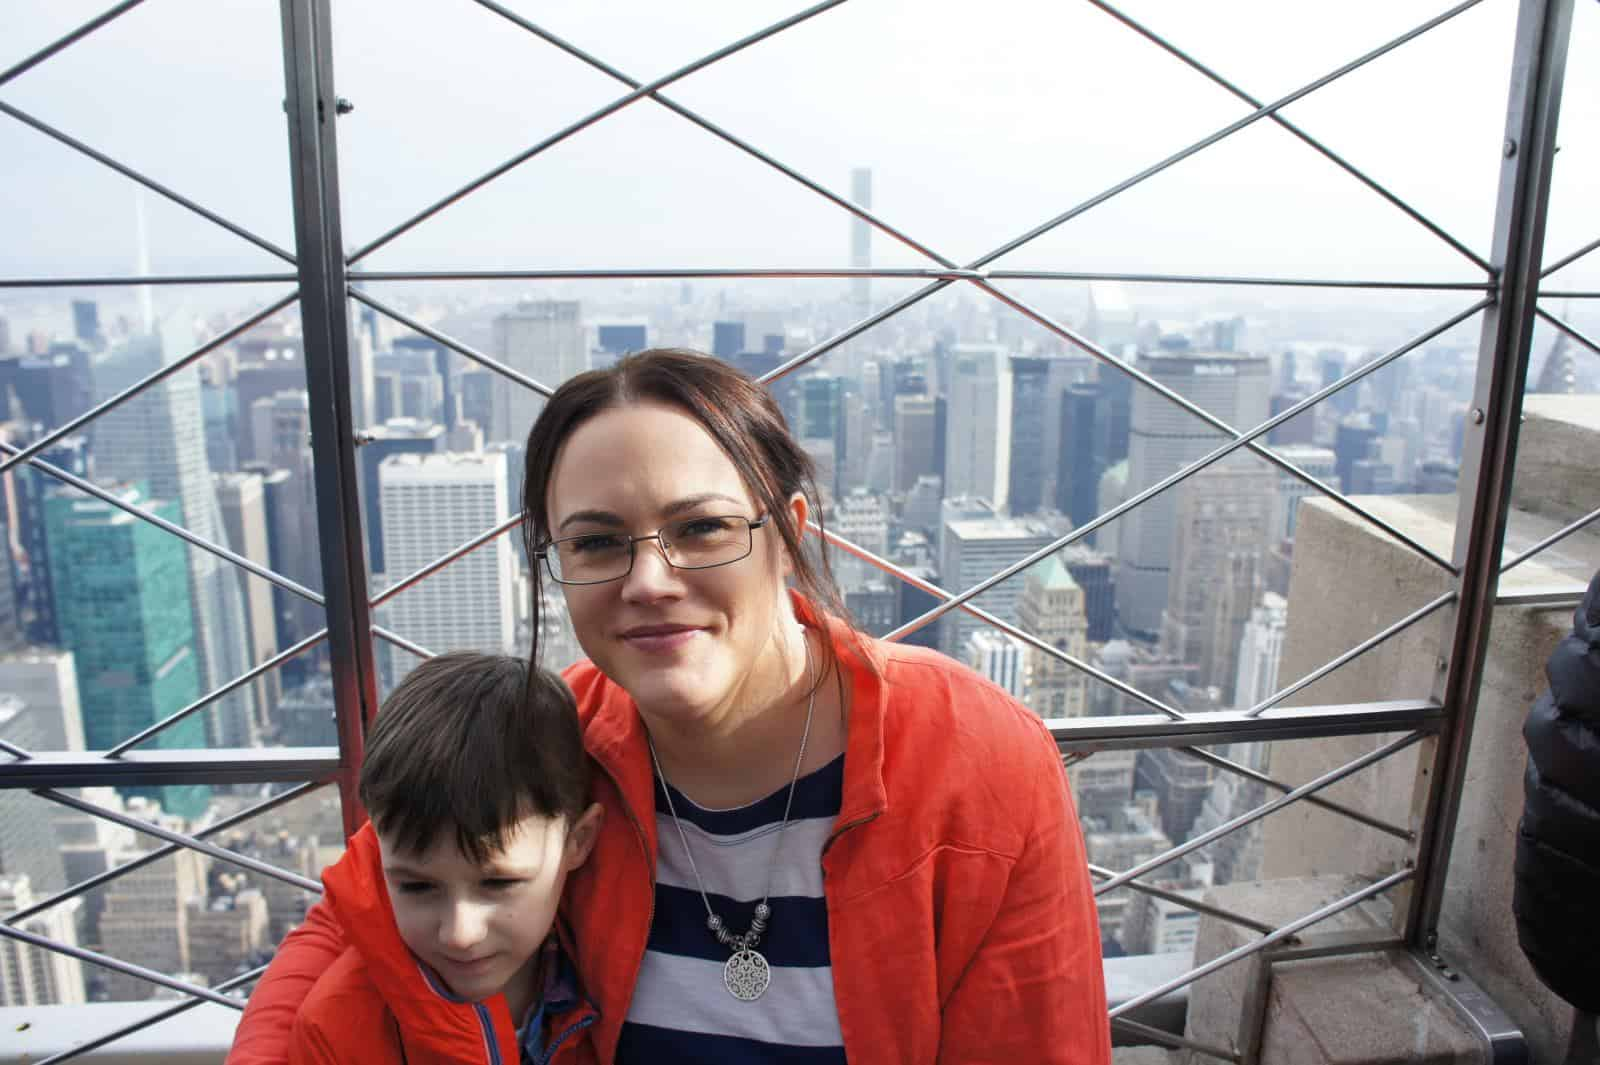 86th Floor of Empire State Building